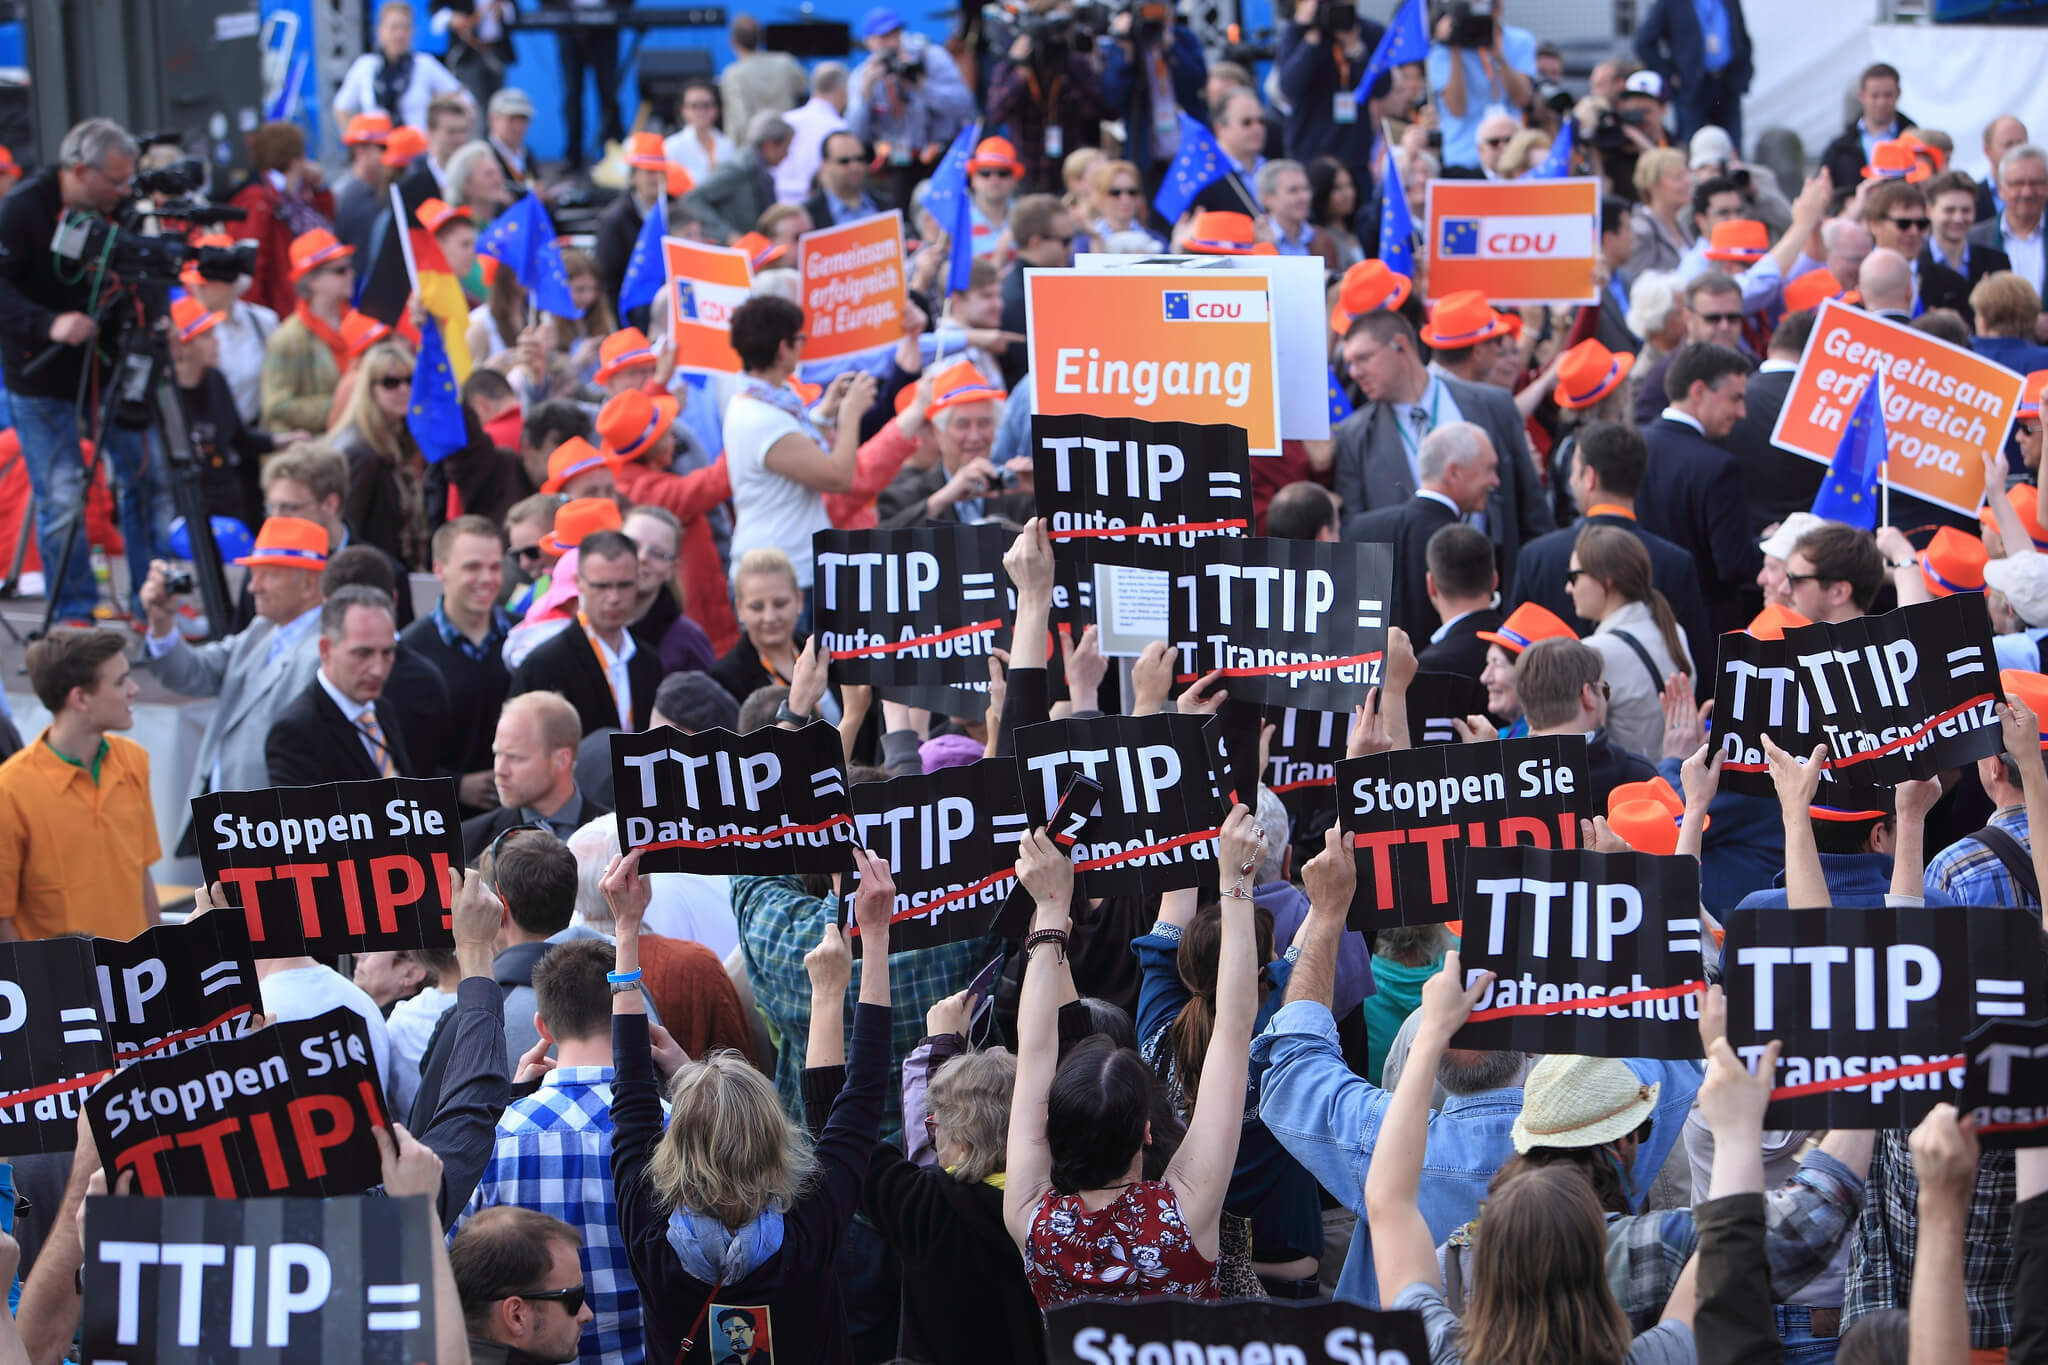 TTIP Flashmob in Hamburg. © campact / Flickr